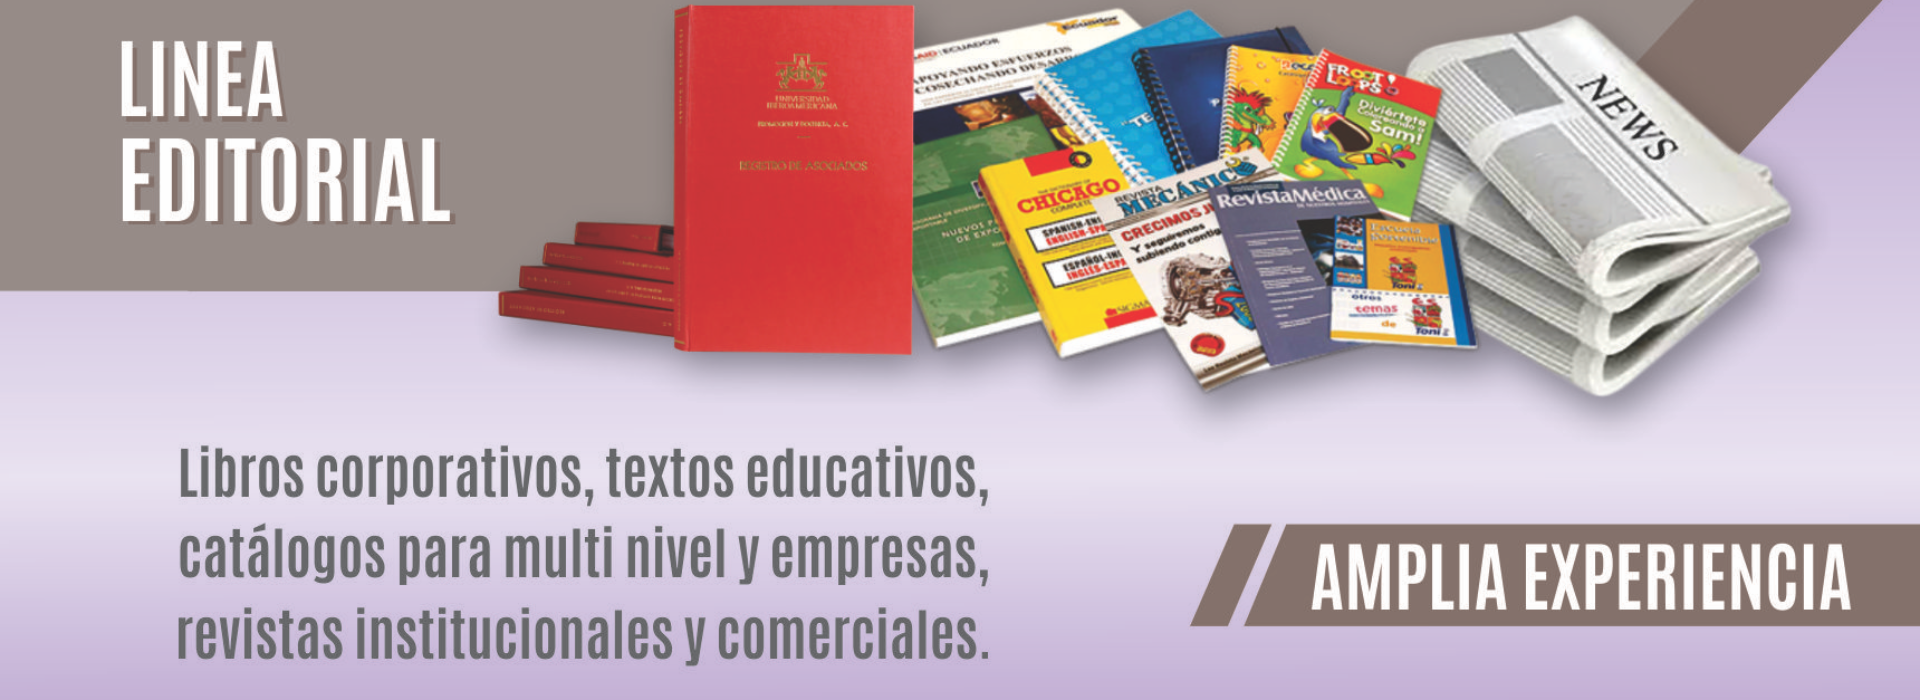 banner web linea editorial